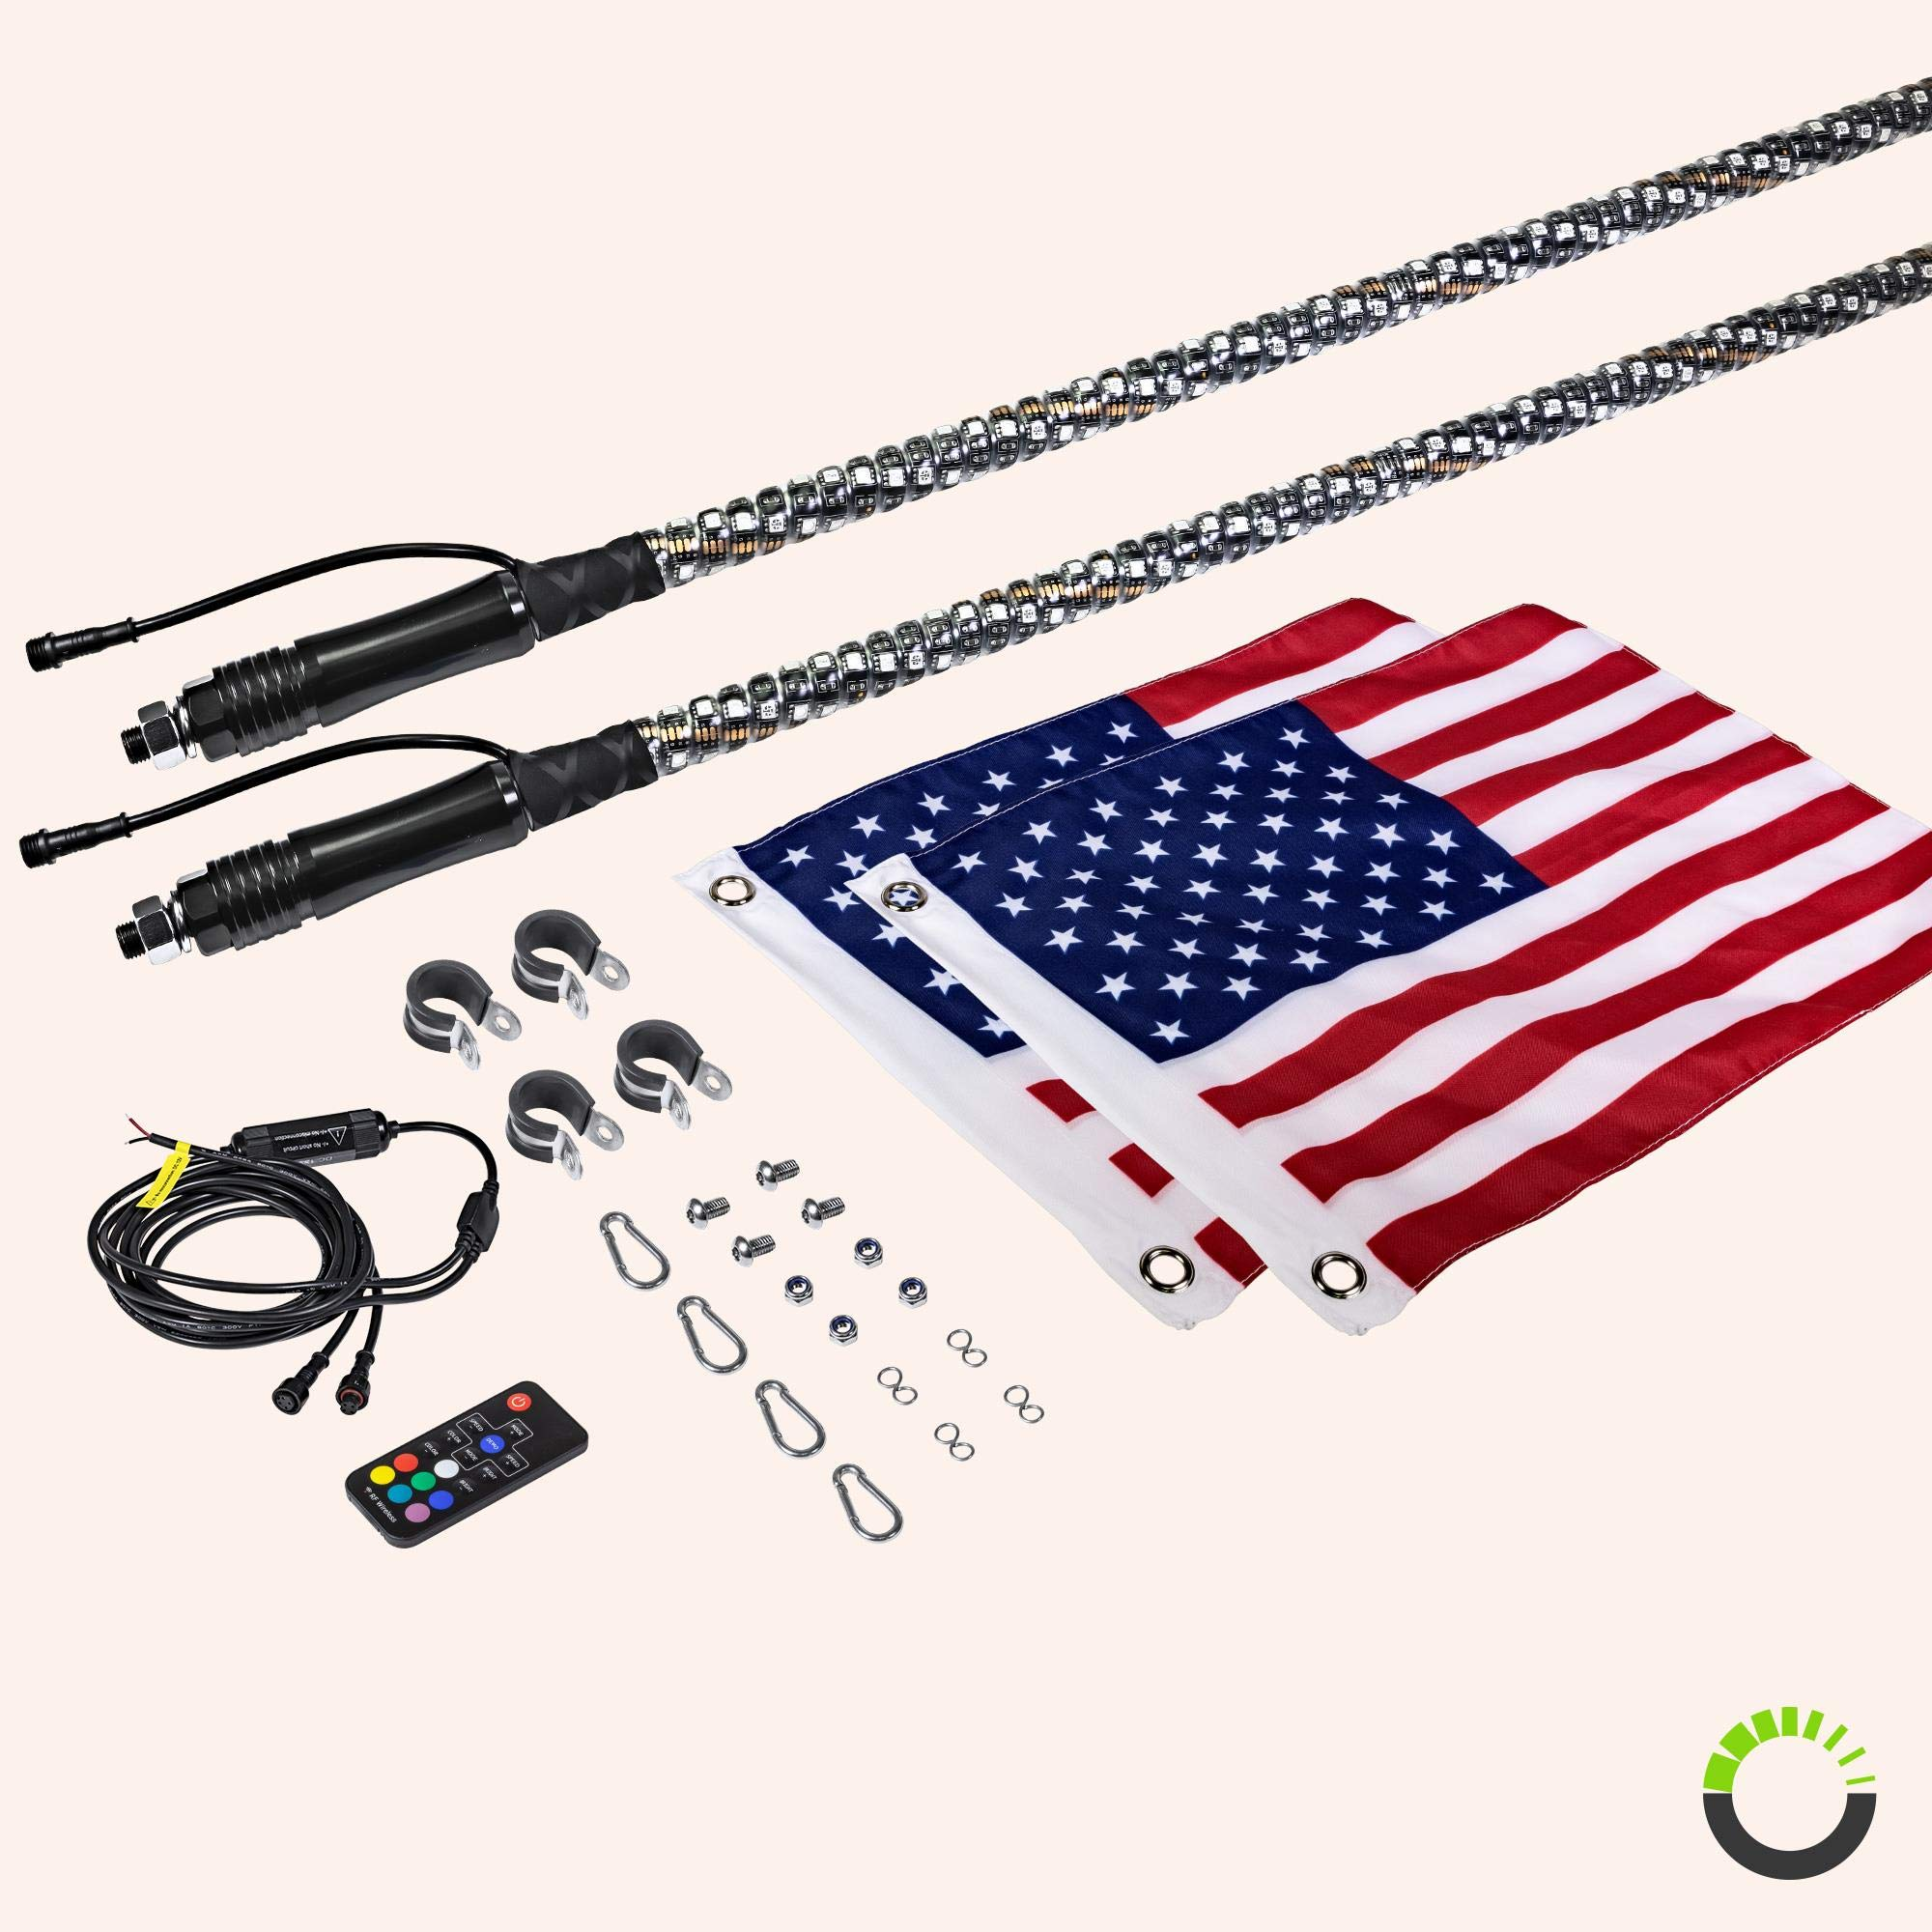 2pc 4ft Spiral LED Whip Lights w/Flag [21 Modes] [20 Colors] [Wireless Remote] [Weatherproof] Lighted Antenna Whips - Accessories for ATV Polaris RZR 4 Wheeler by ONLINE LED STORE (Image #7)